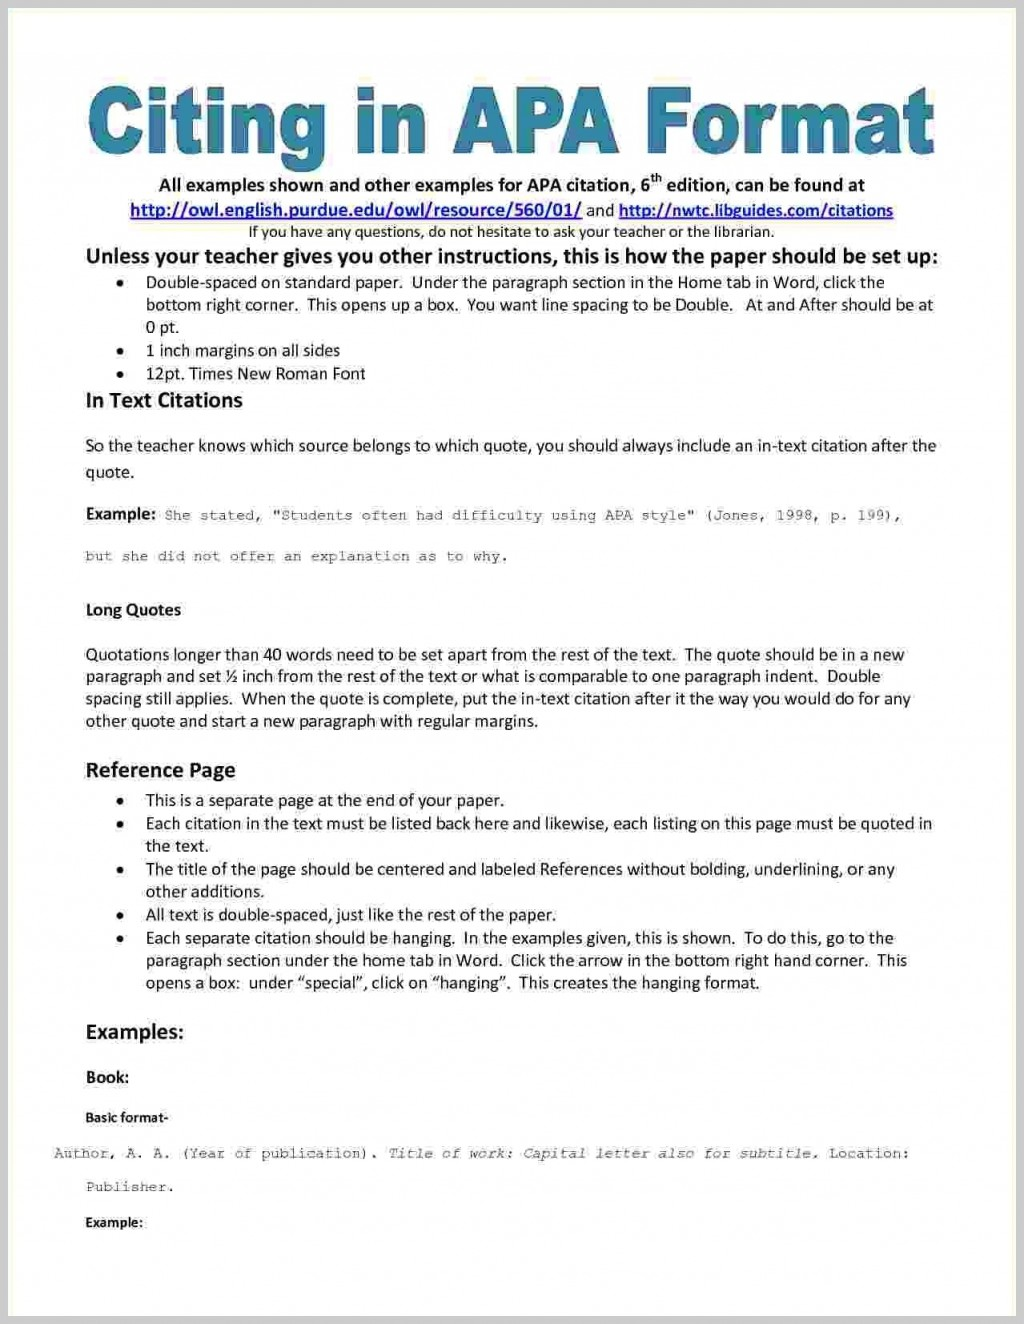 003 Research Paper Apa Style Reference In Text Citation Mla Examples Toreto Co Line Database Security Related Impressive Papers Pdf Large